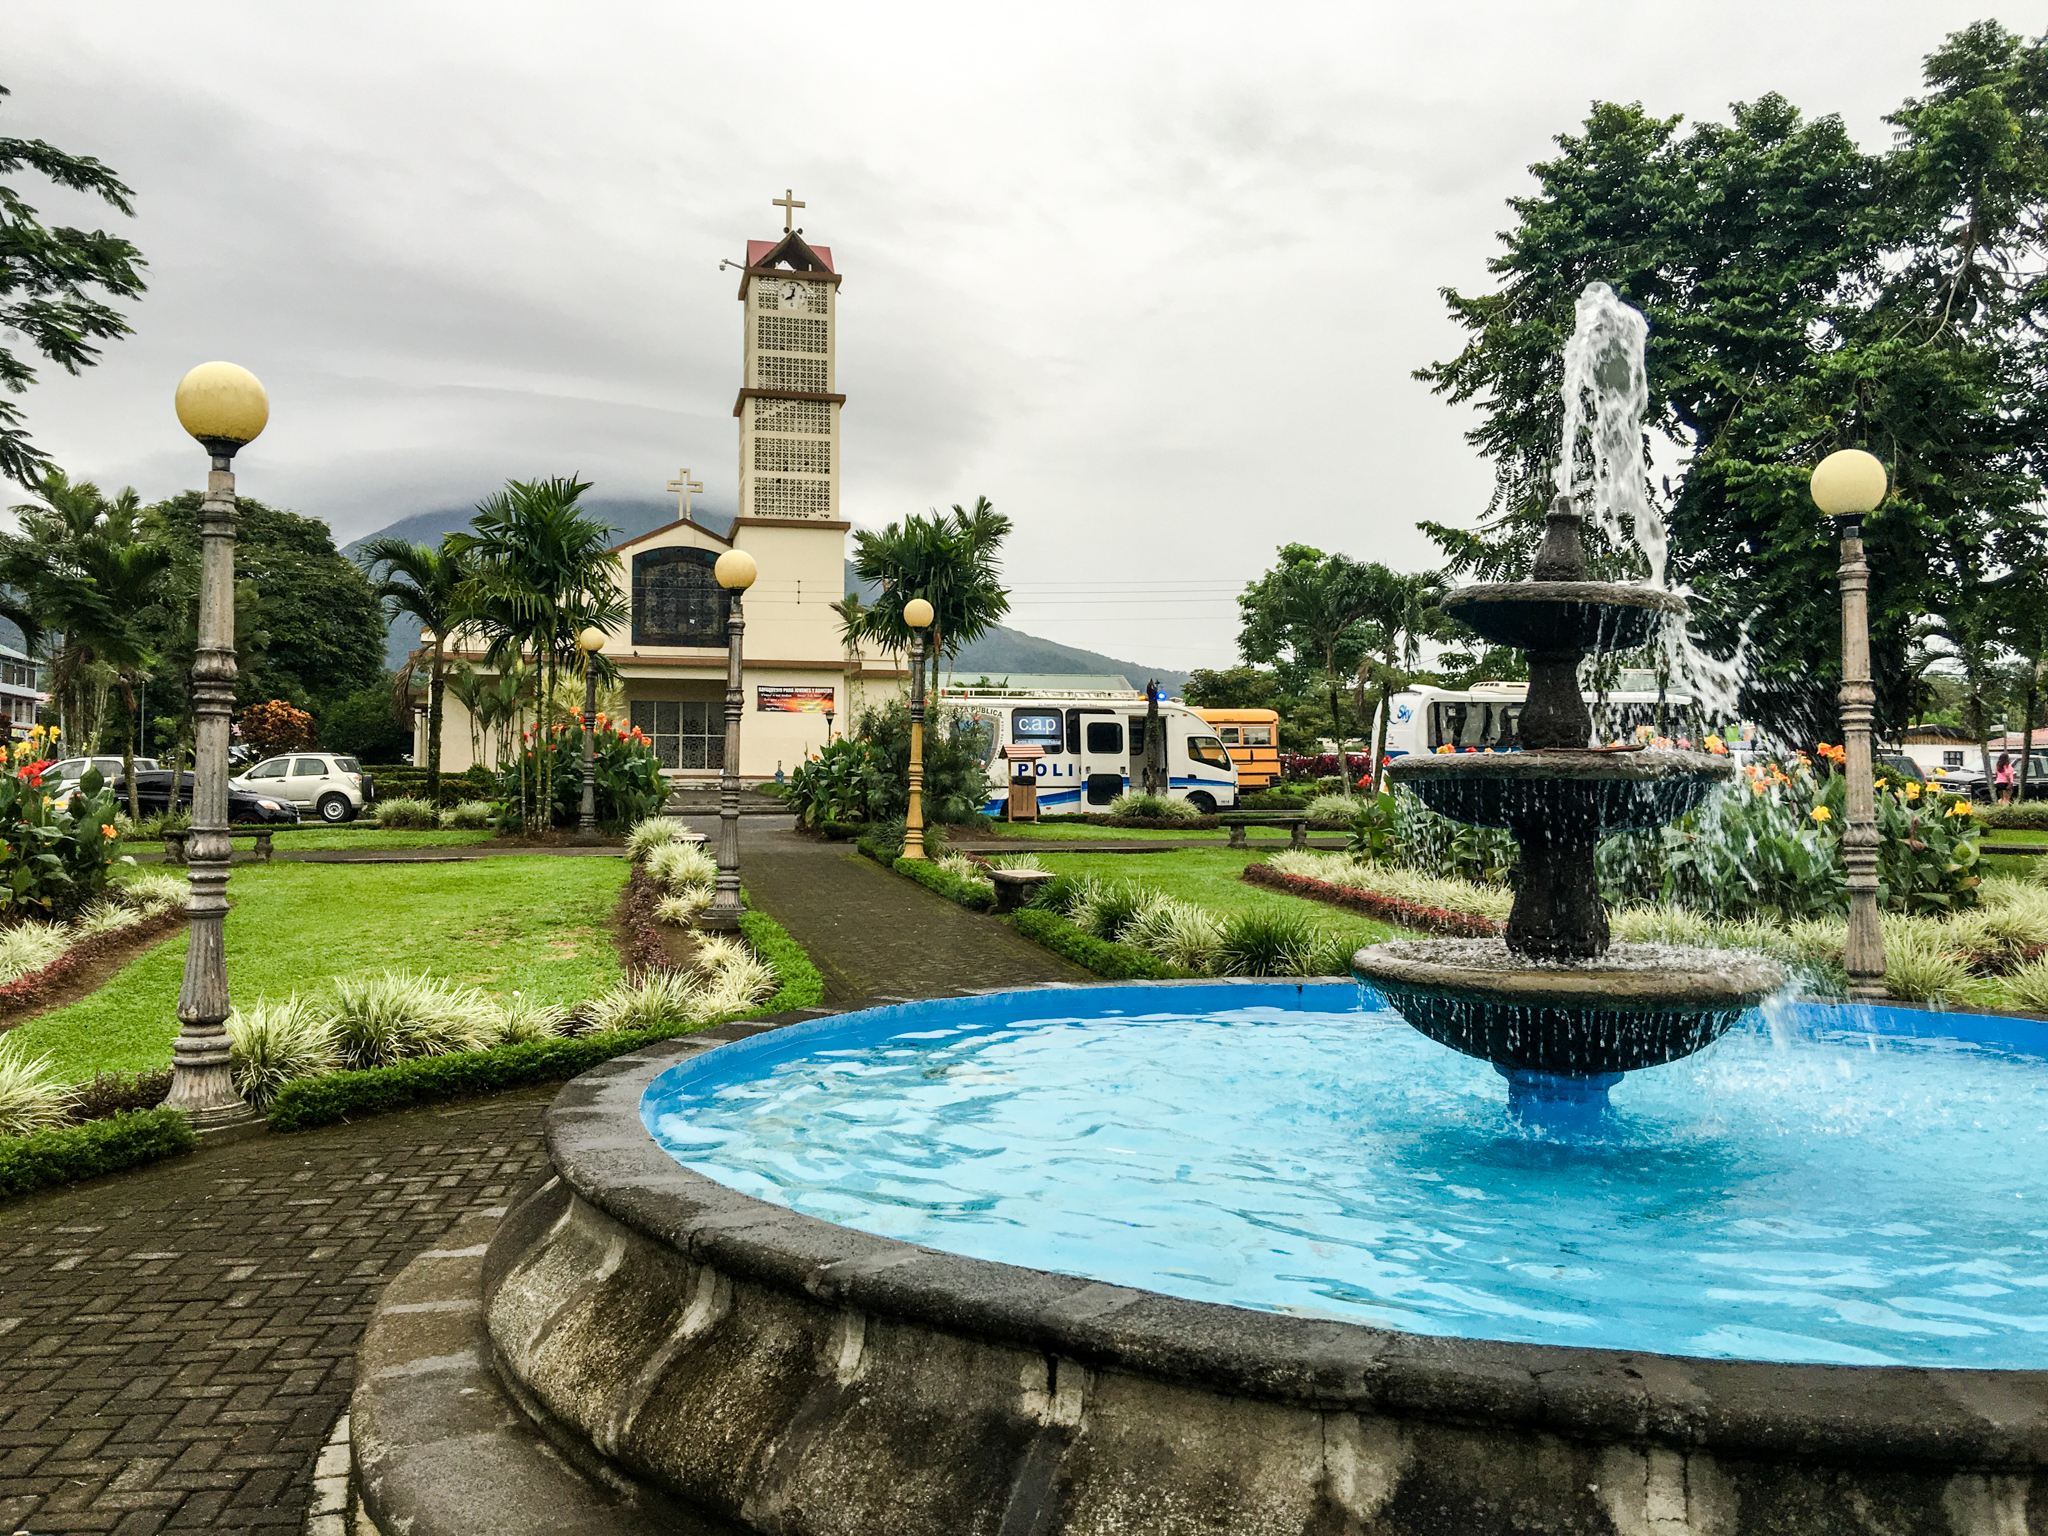 Later, I walked around La Fortuna and took this photo.